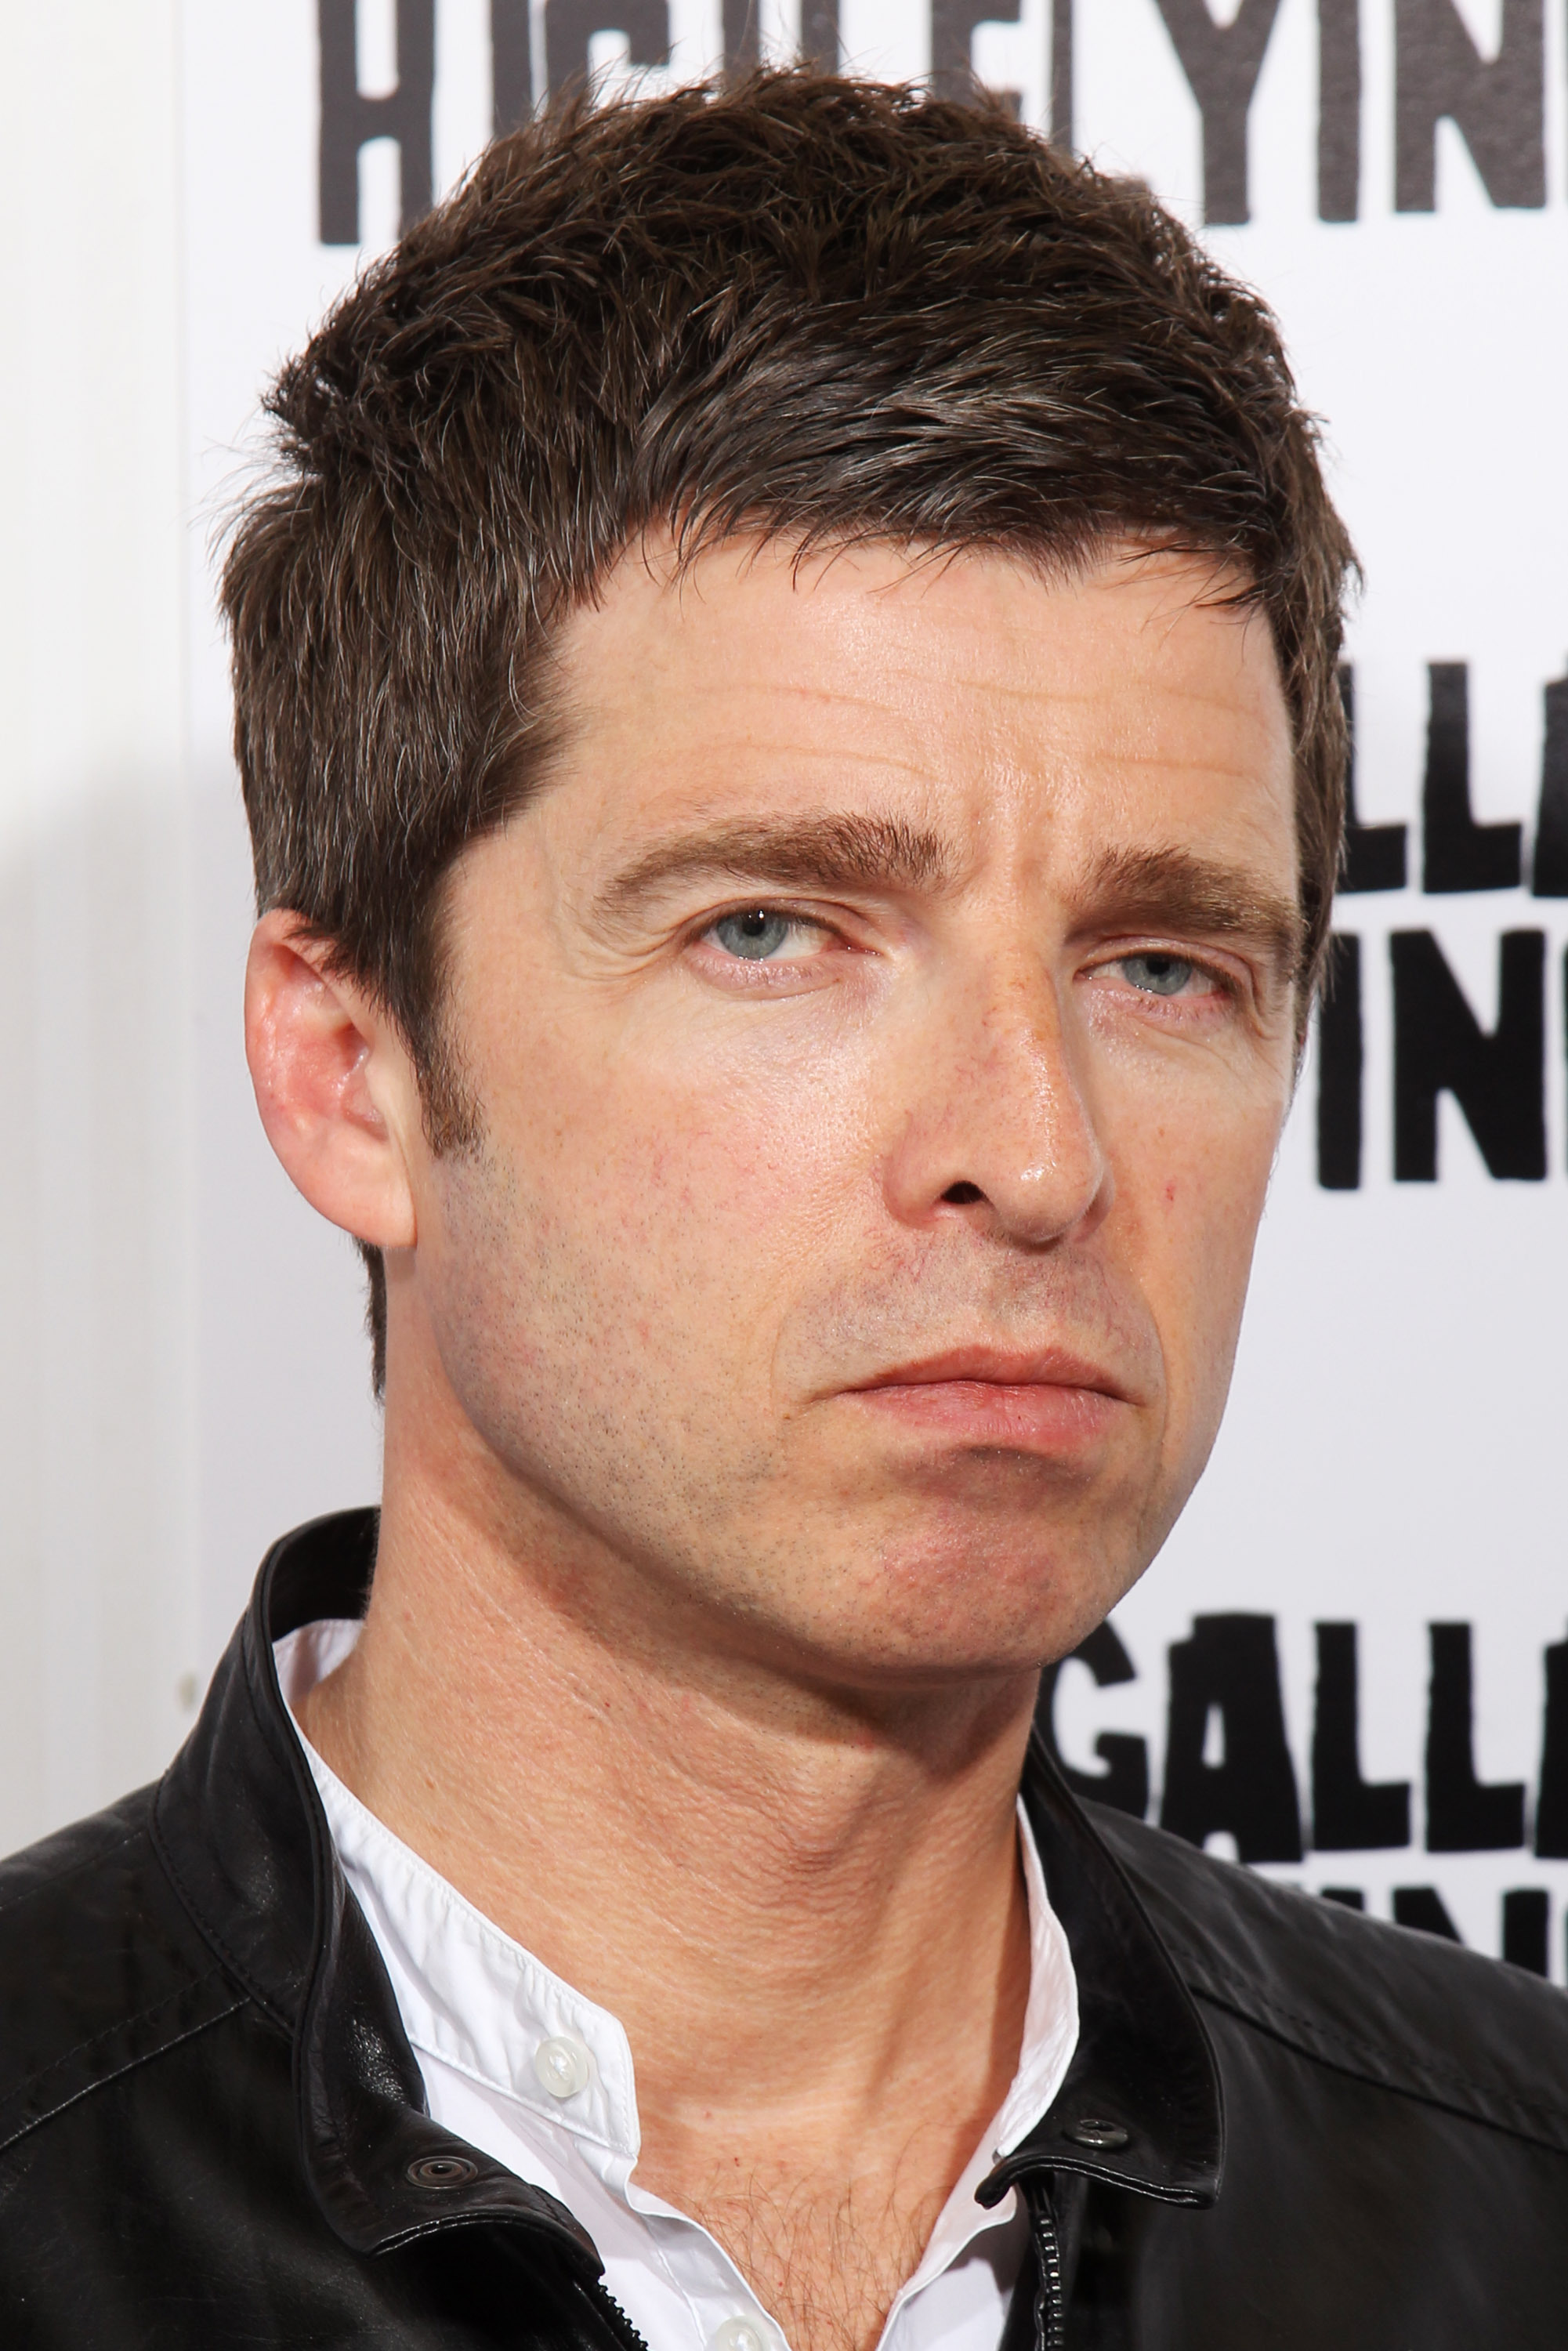 Noel Gallagher Iphone Wallpapers